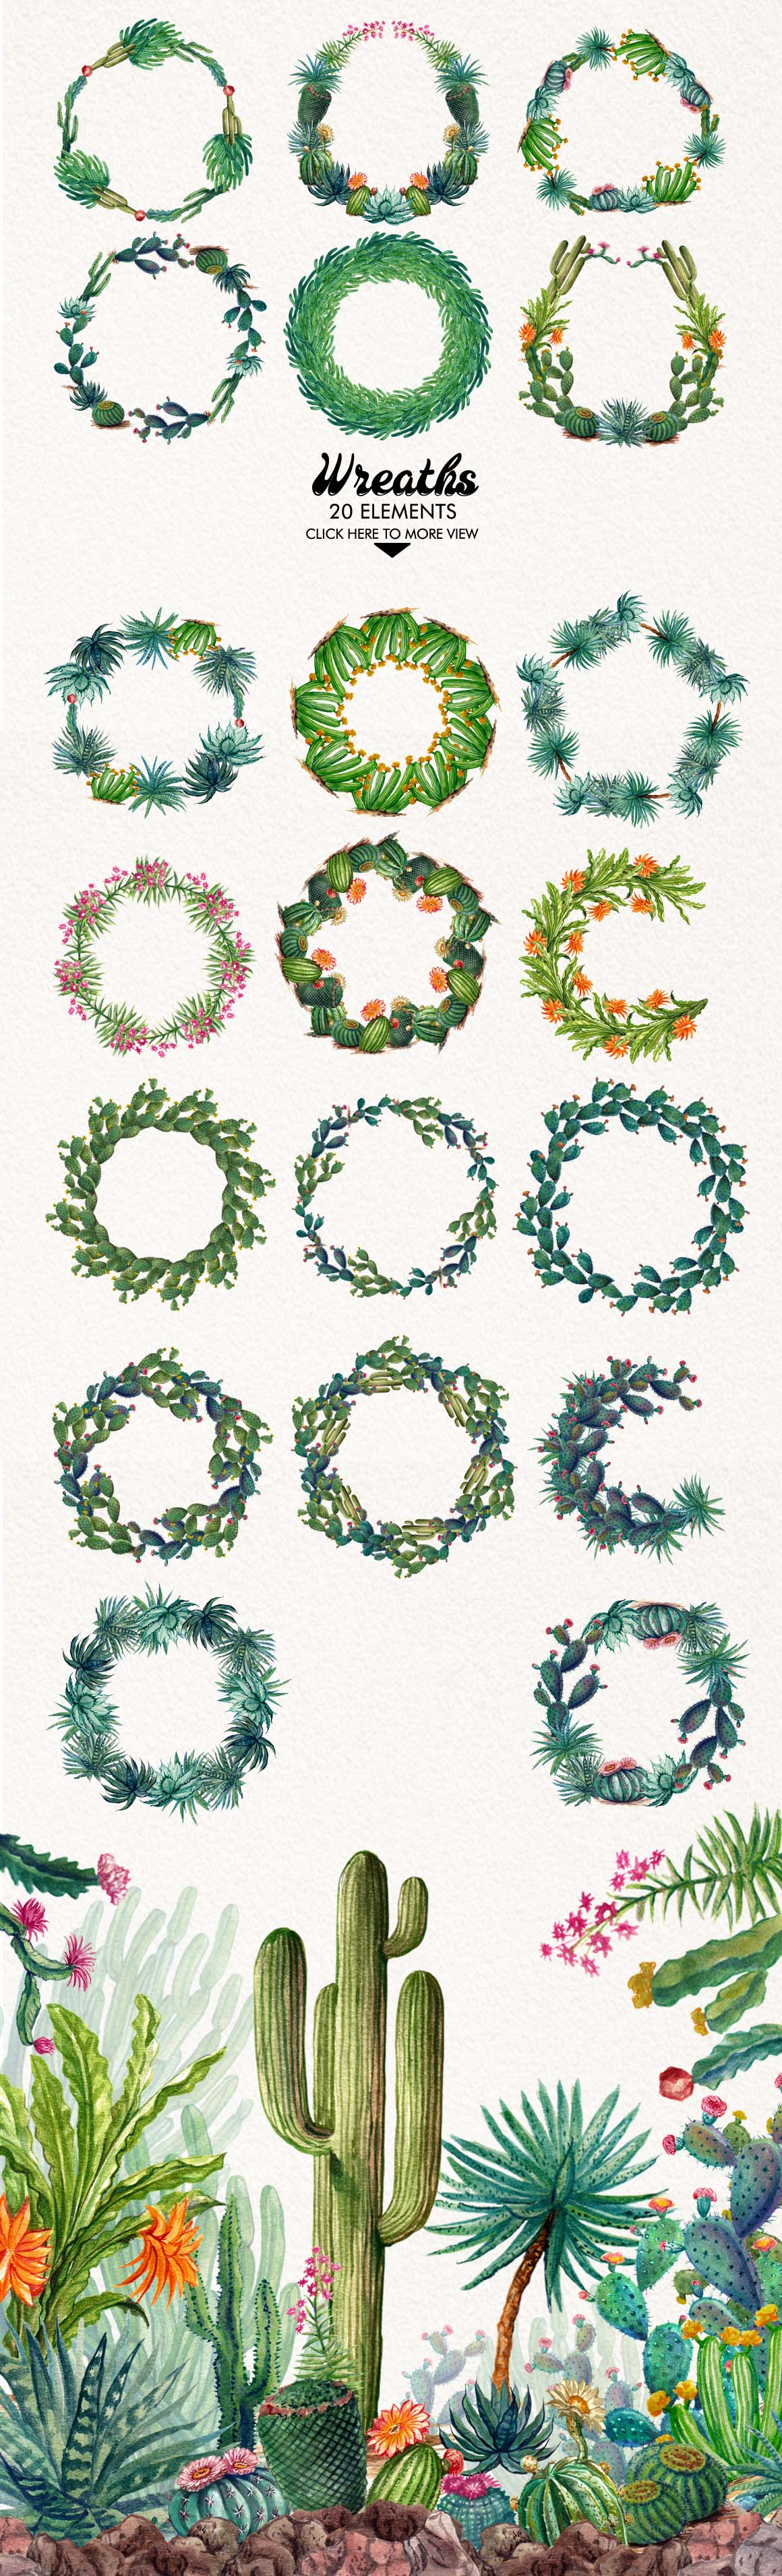 Watercolor Cactuses example image 5